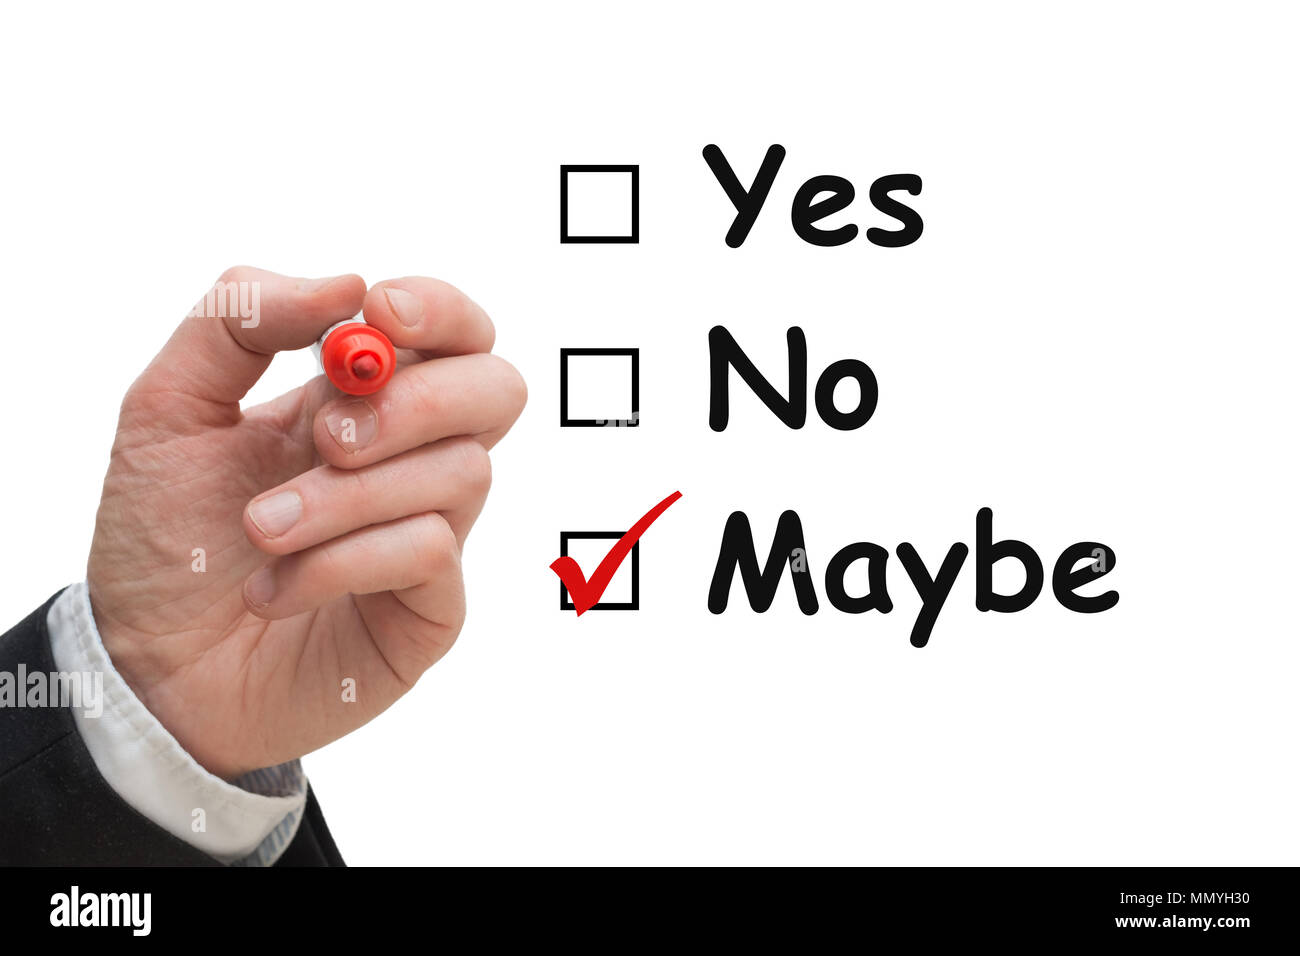 Male hand with pen ticking off the box Maybe in a yes/no multiple choice list. - Stock Image